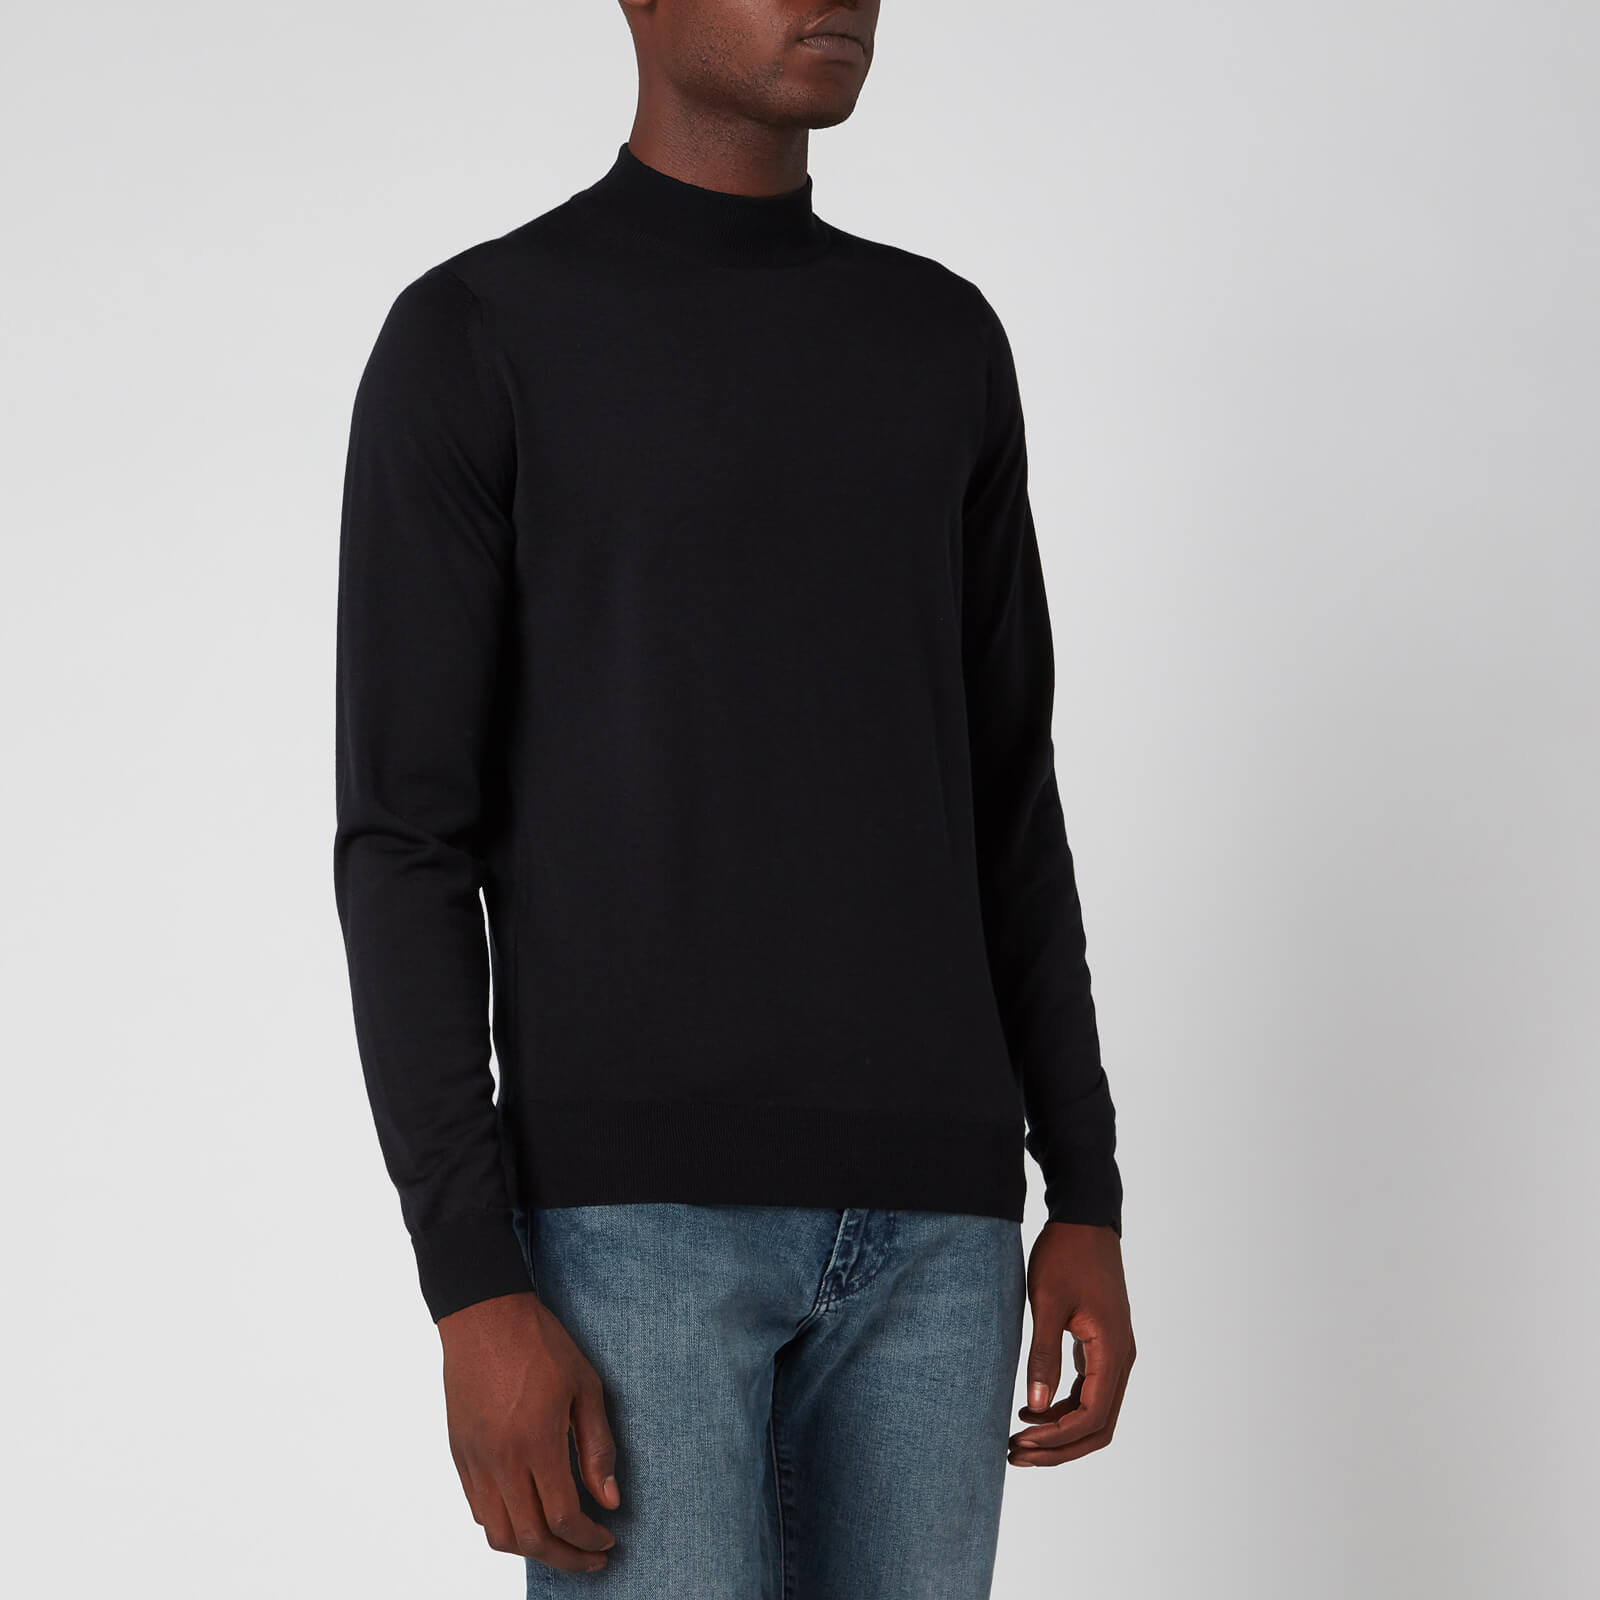 John Smedley Men's Harcourt 30 Gauge Extra Fine Merino Wool Turtleneck Jumper Black